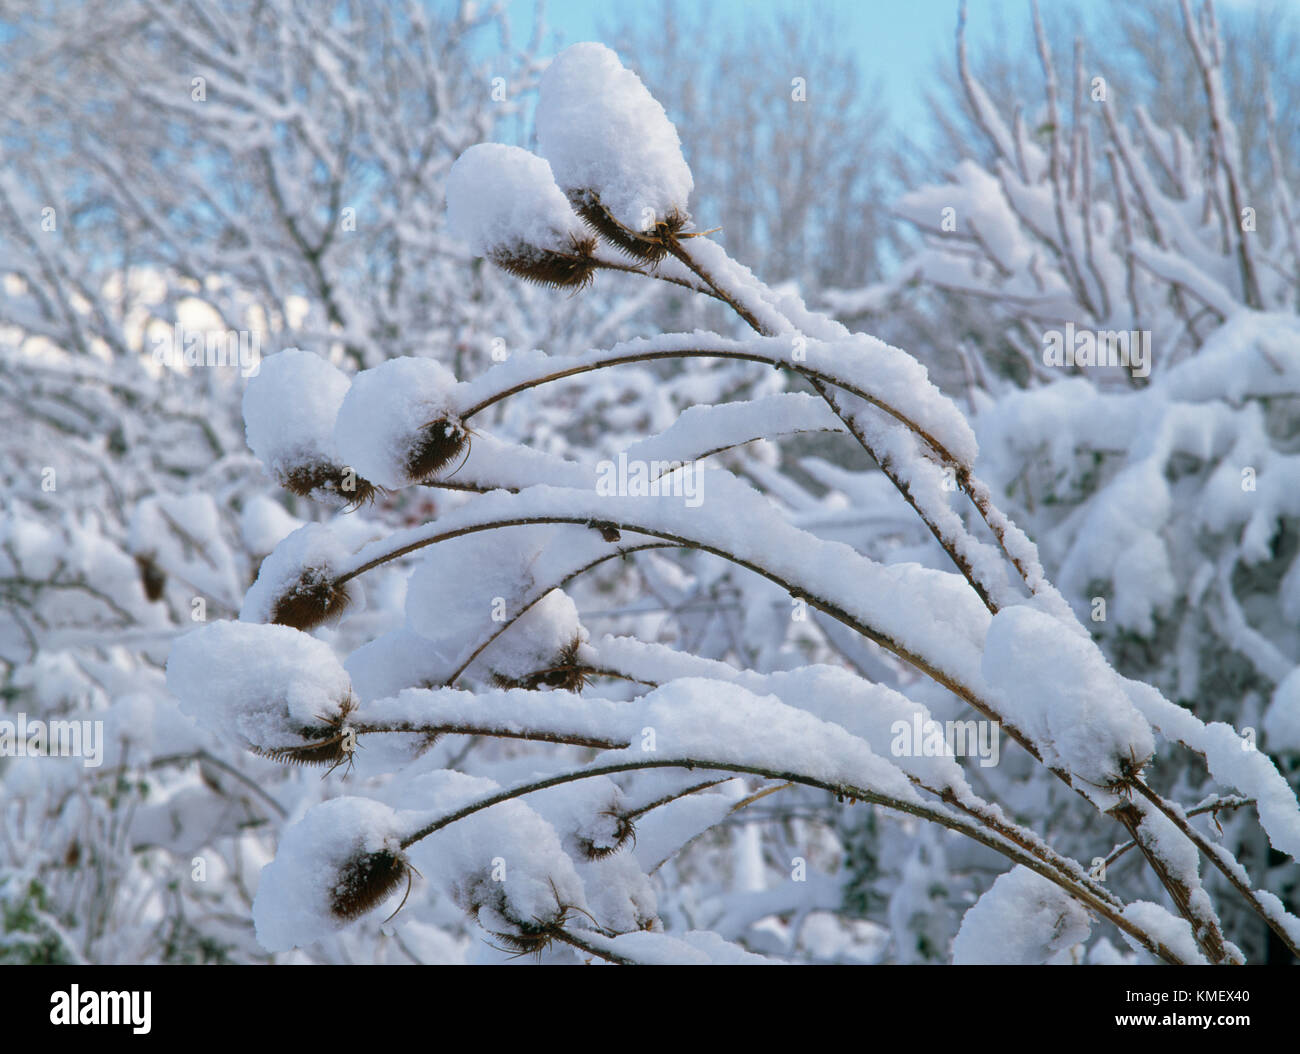 Dipsacus fullonum or Fuller's teasel seed heads covered in, and weighed down by winter snow. Architectural biannual - Stock Image